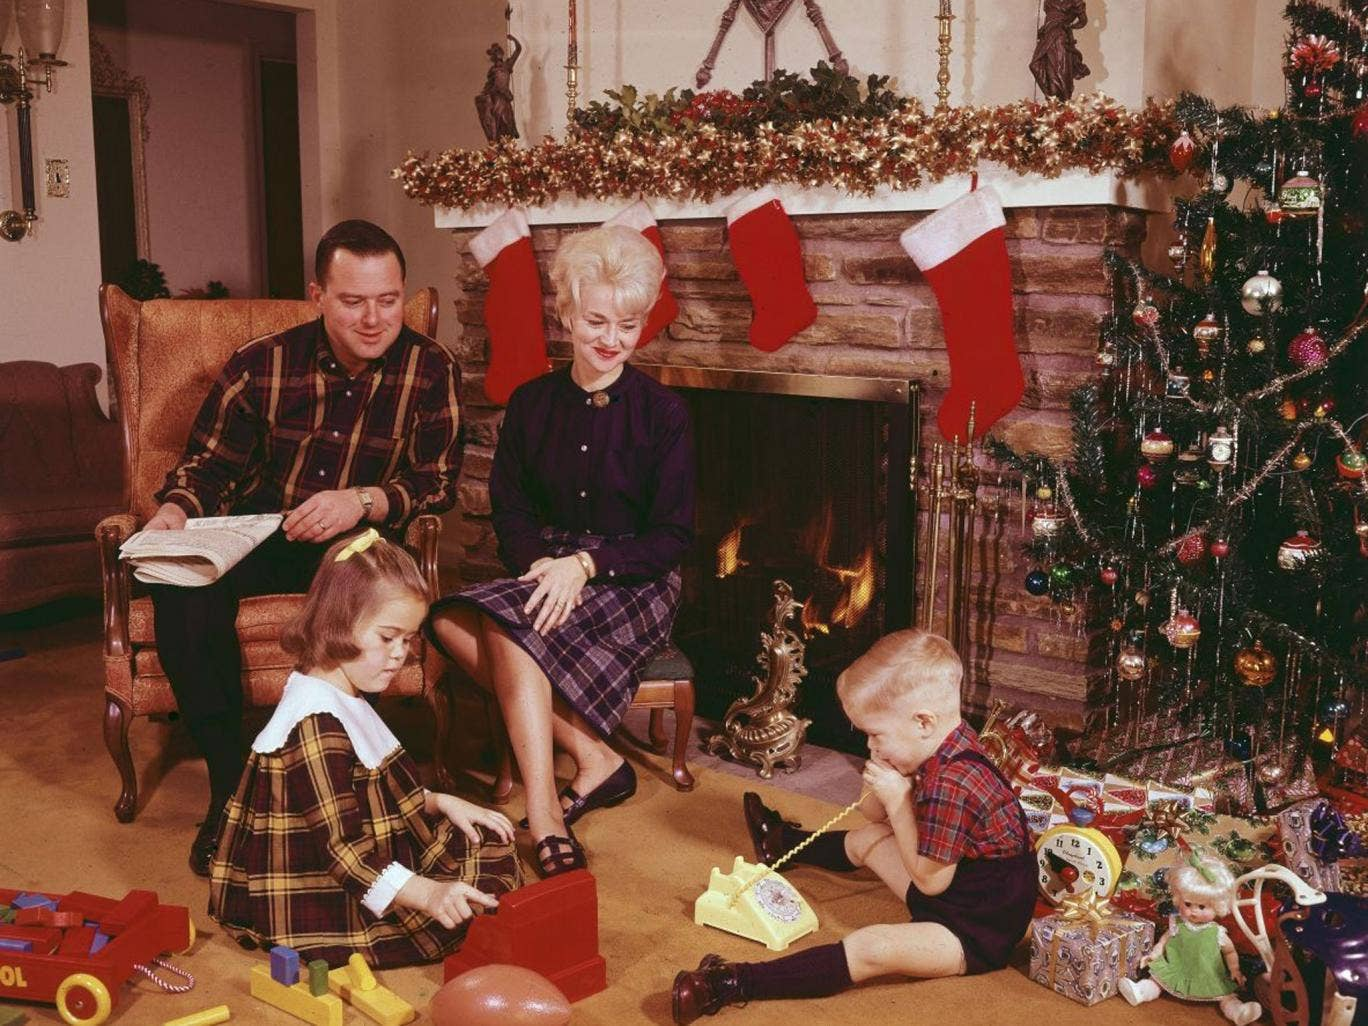 Seasonal surfeit: The excesses of Christmas are a small price to pay for collective spirit